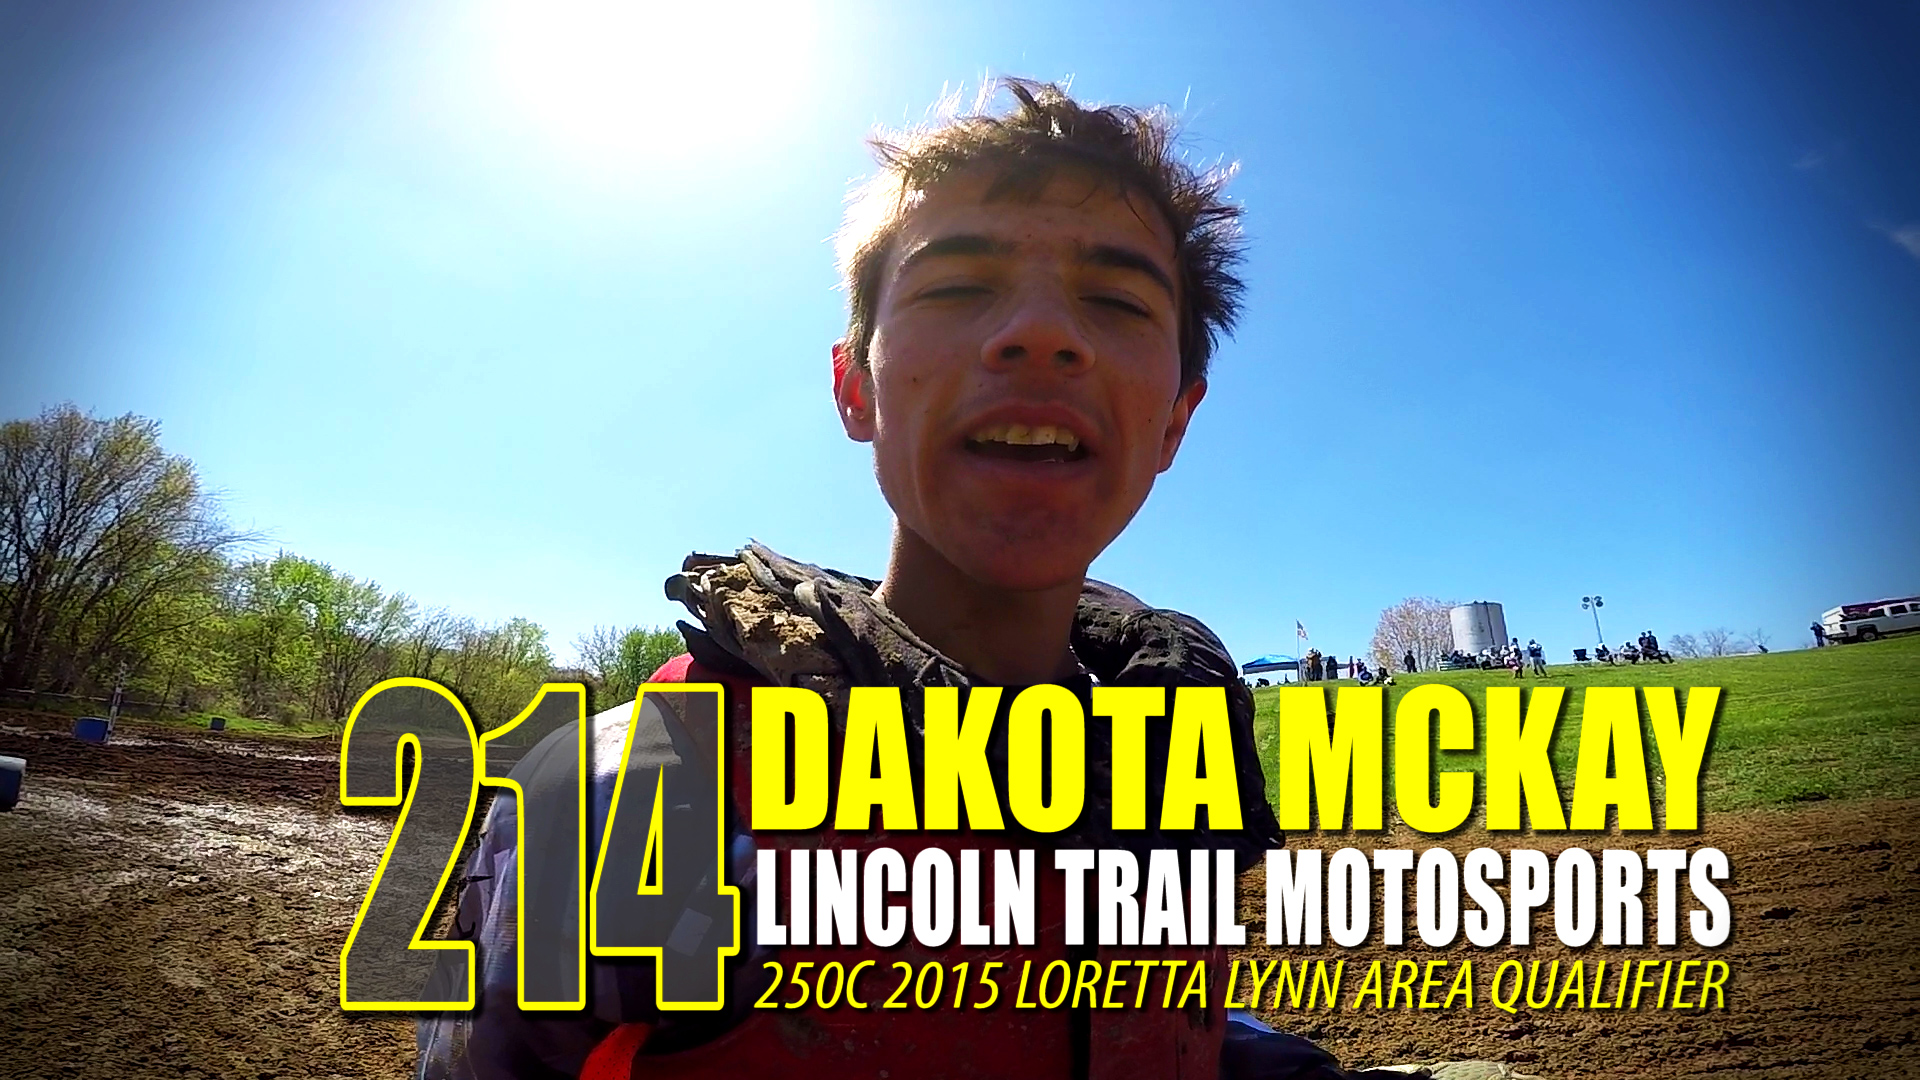 HELMET CAM: Dakota McKay 250C Lincoln Trail LLAQ - Backwards